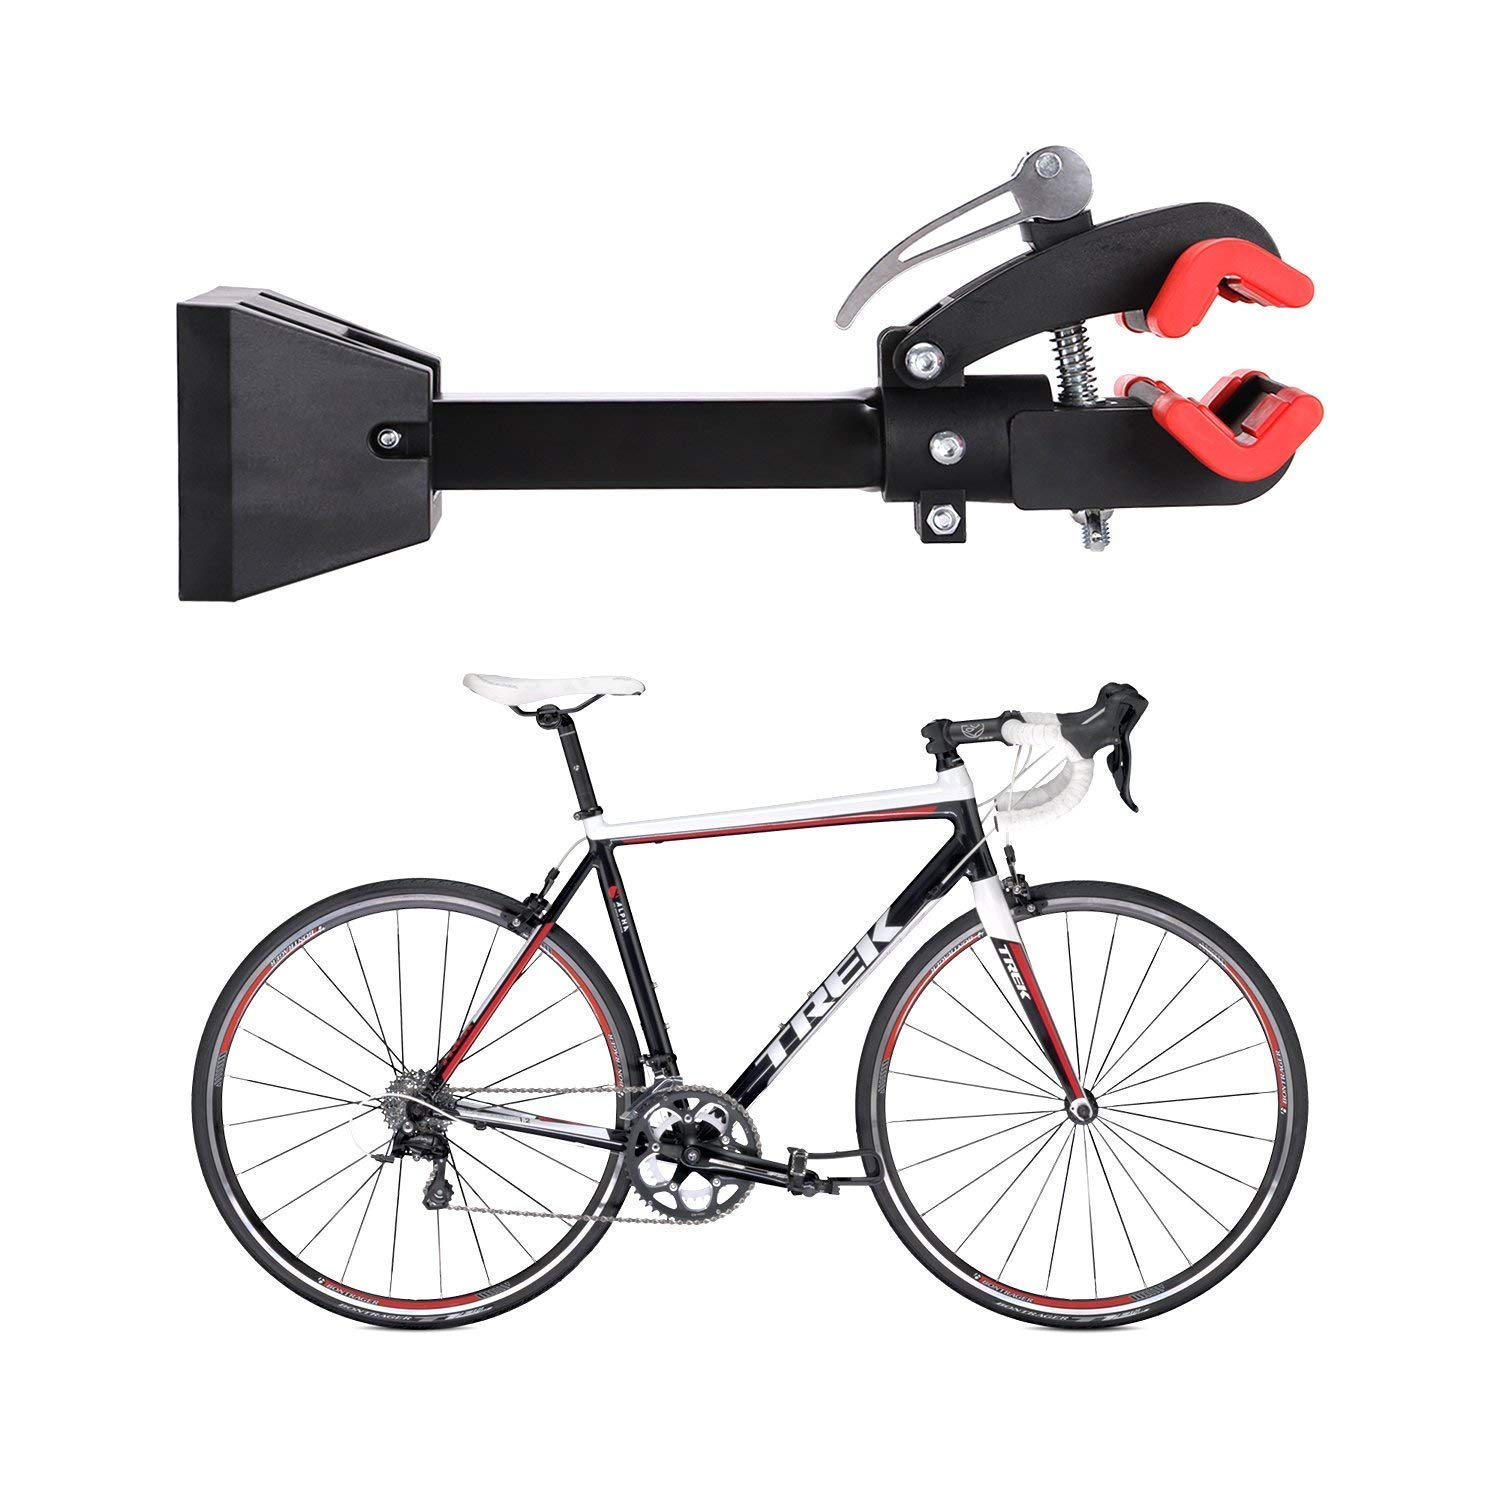 Gharpbik Workstands Bike Repair Stand Tool-Bike Wall Mount Bicycle Stand with Quick Release Adjustment Clamp Bicycle Stand Wall Mounted Foldable Maintenance for Garage or Home(Model:TQXL-06-I